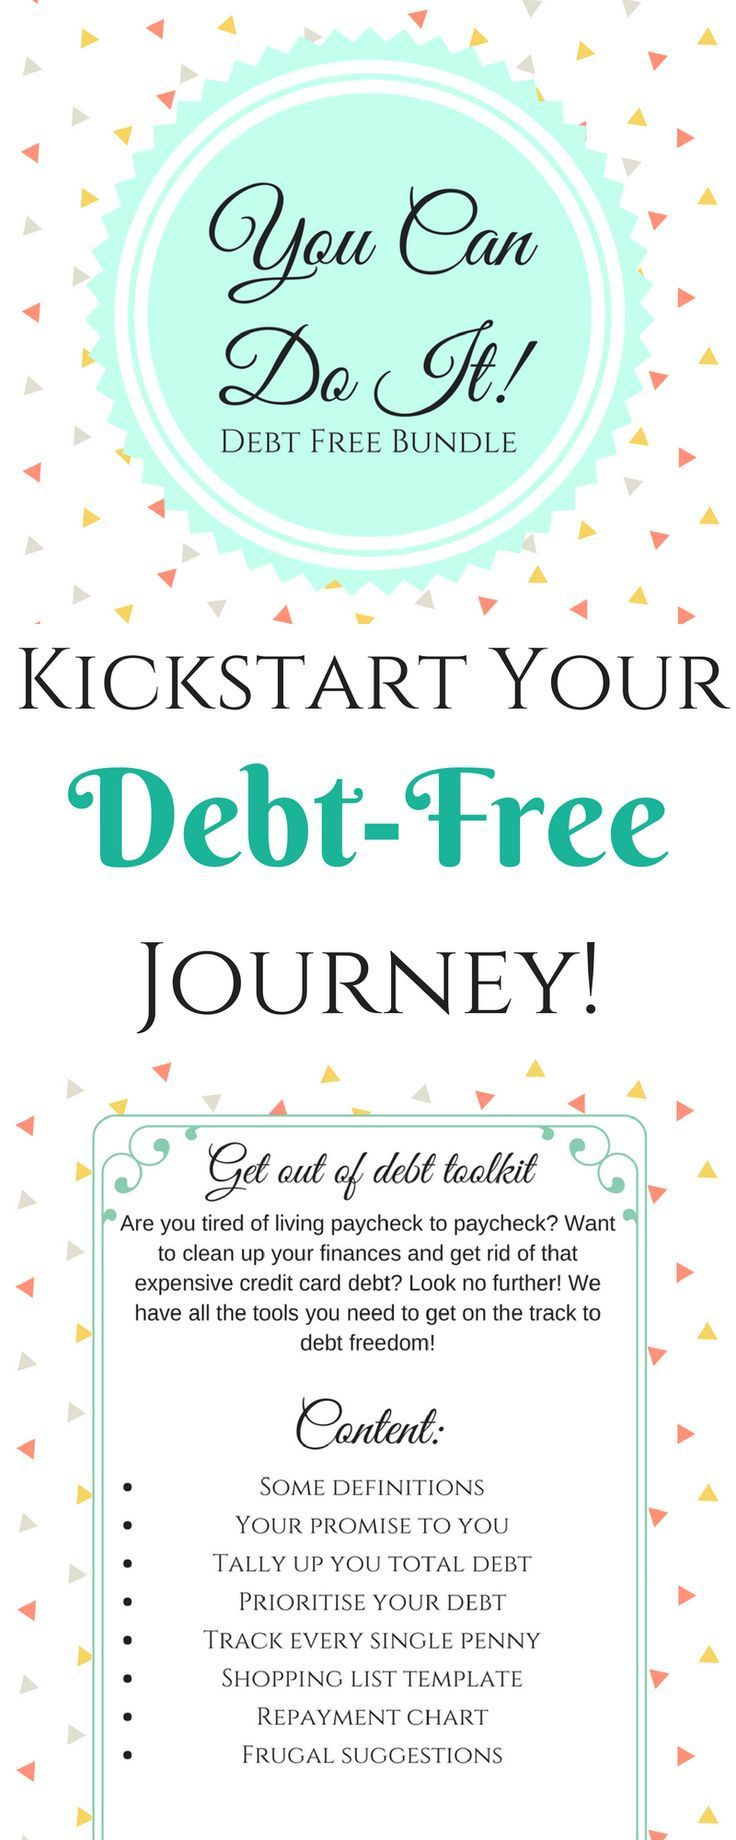 Tired of debt? Ready for a new life? Get started on the right foot with out encouraging, cheerful bundle to kickstart your debtfree journey! Complete with debt trackers, motivational quotes, shopping lists to keep you on track, and much more!